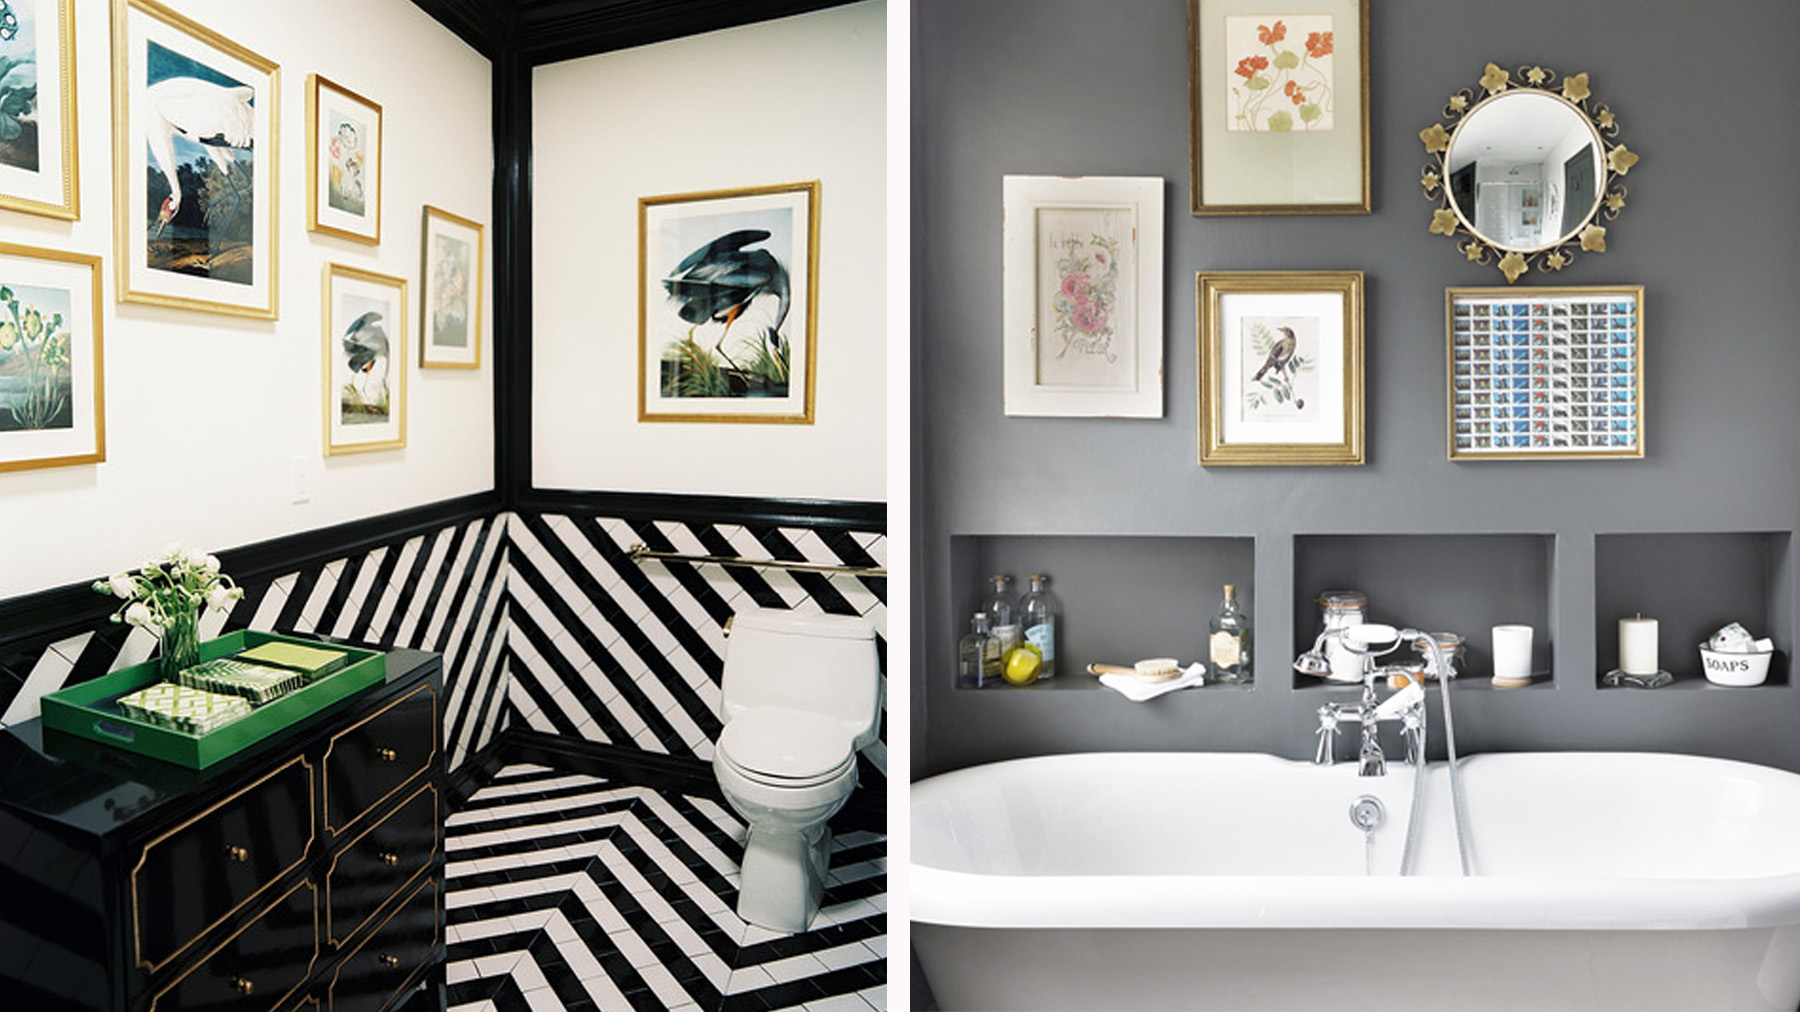 5 ideas for upgrading your bathroom on a budget  dulux